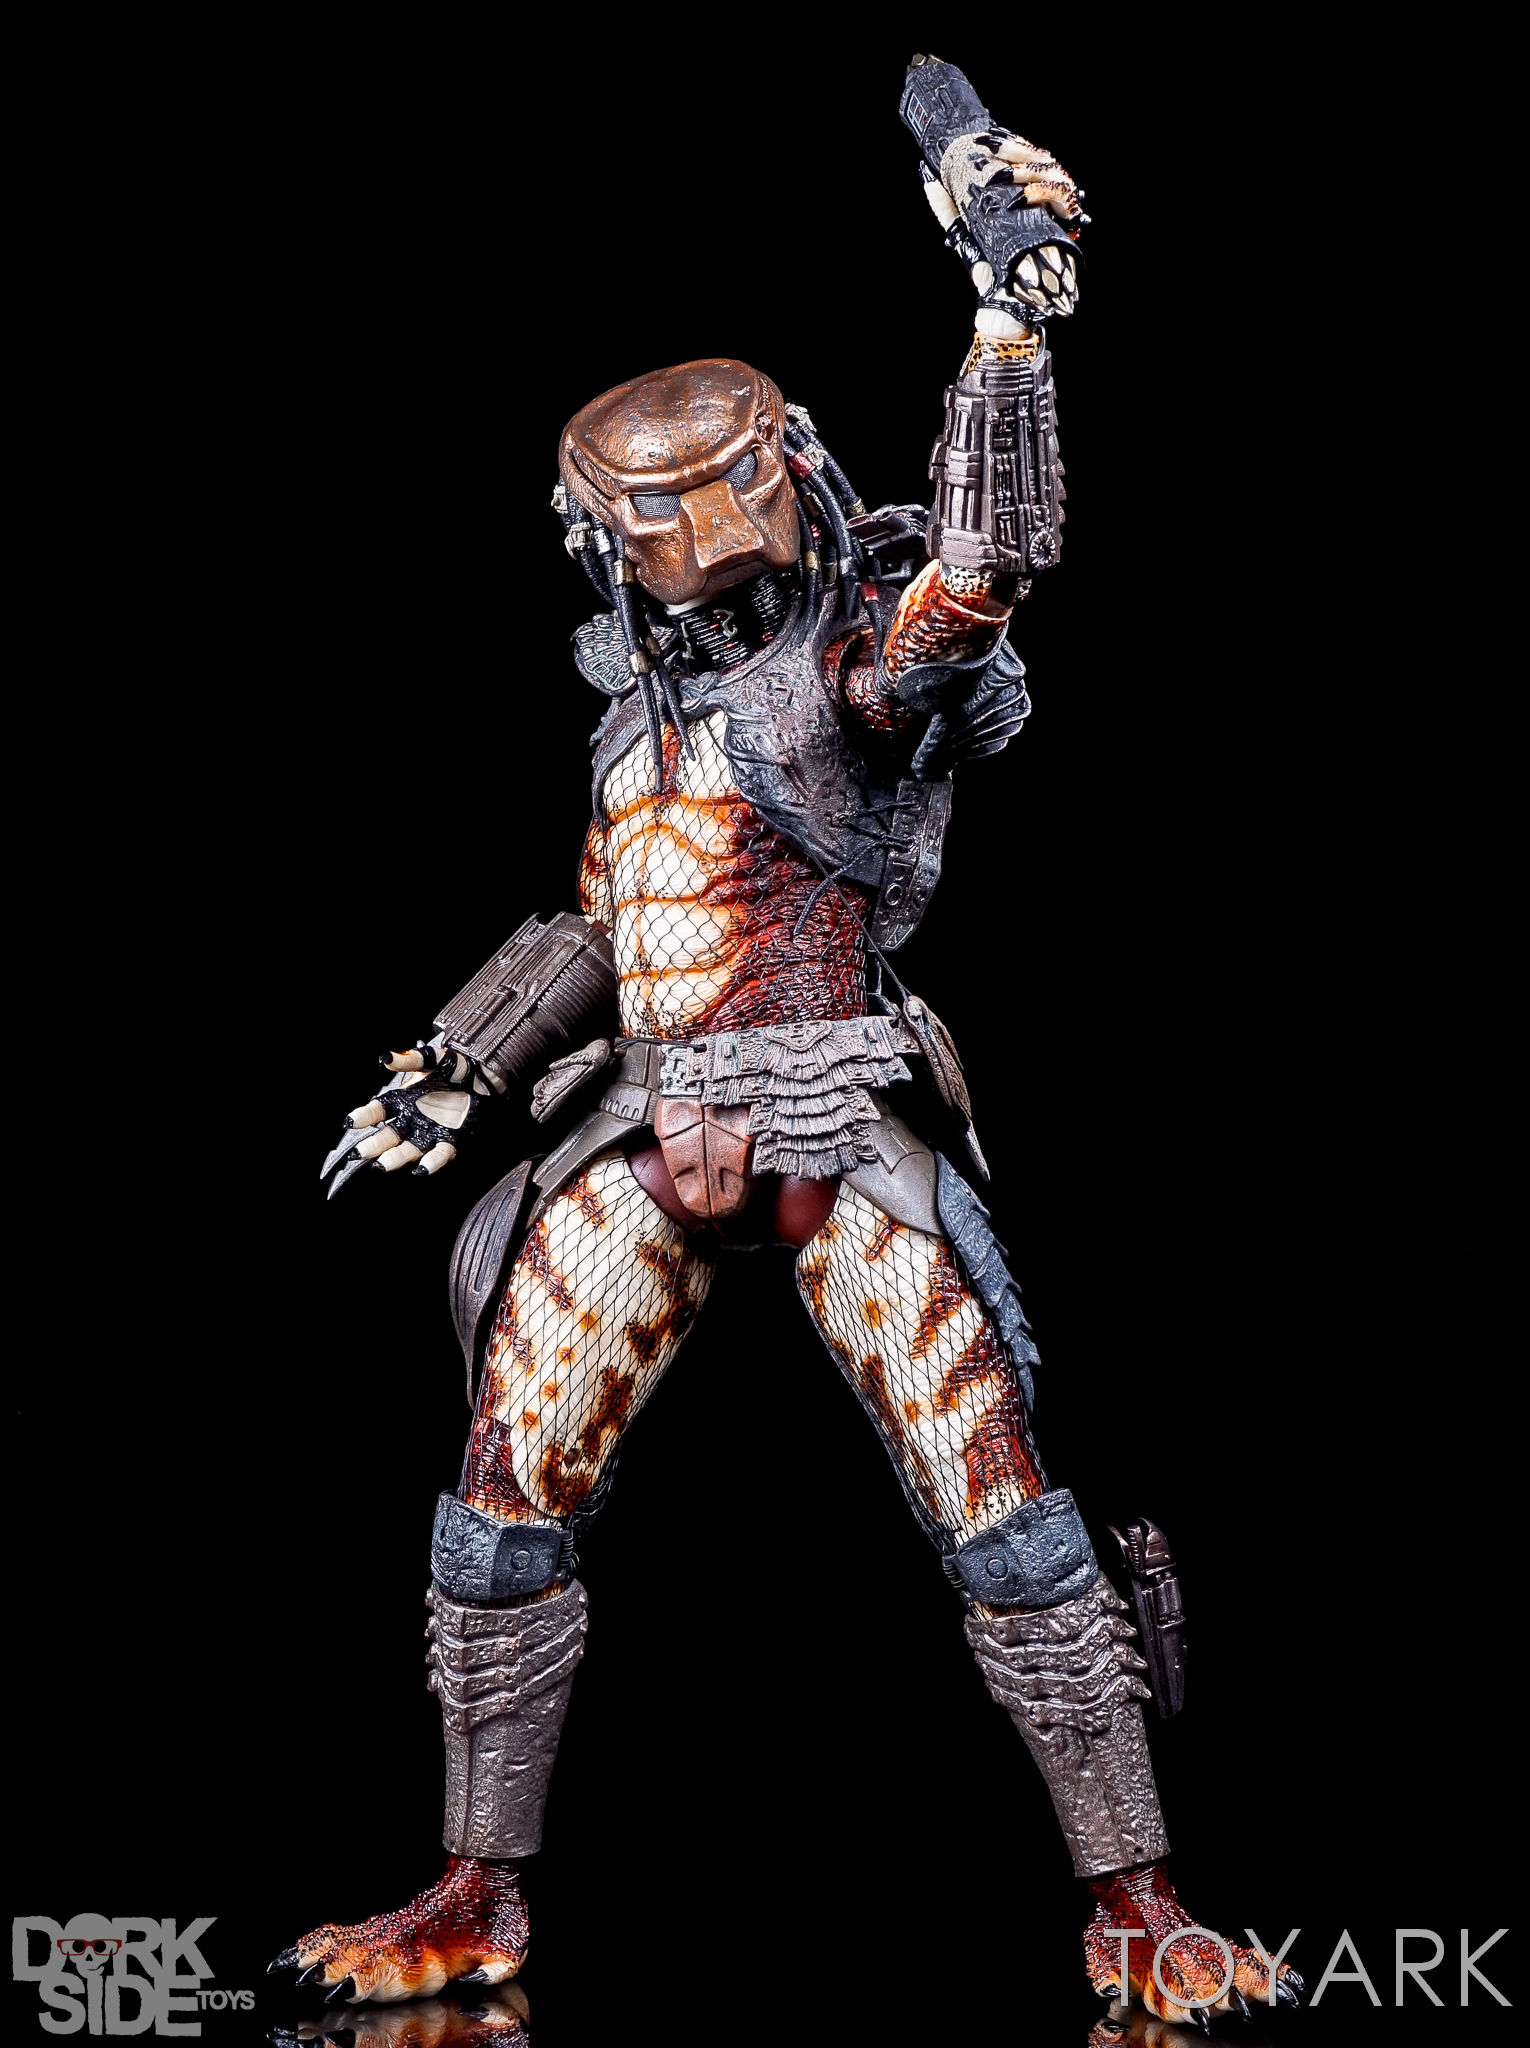 http://news.toyark.com/wp-content/uploads/sites/4/2016/12/NECA-20-Inch-City-Hunter-Predator-064.jpg